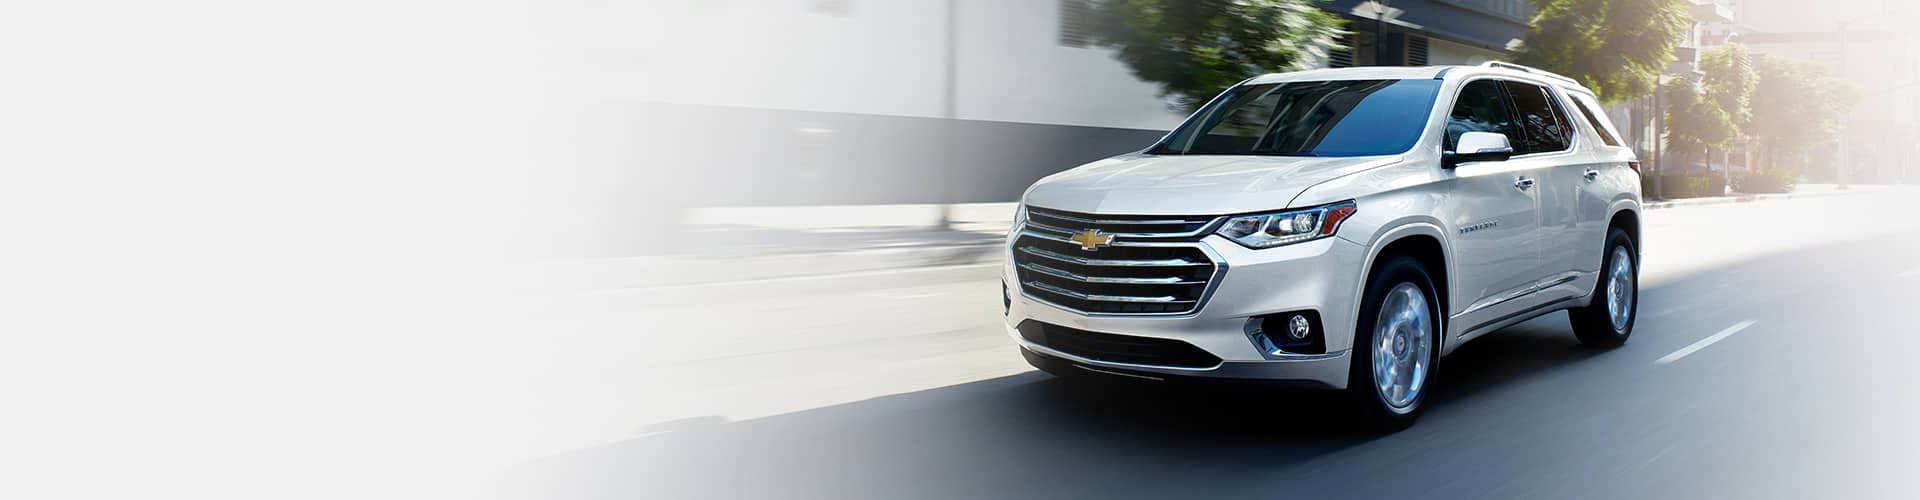 Chevrolet OnStar with In-Car Wi-Fi from AT&T